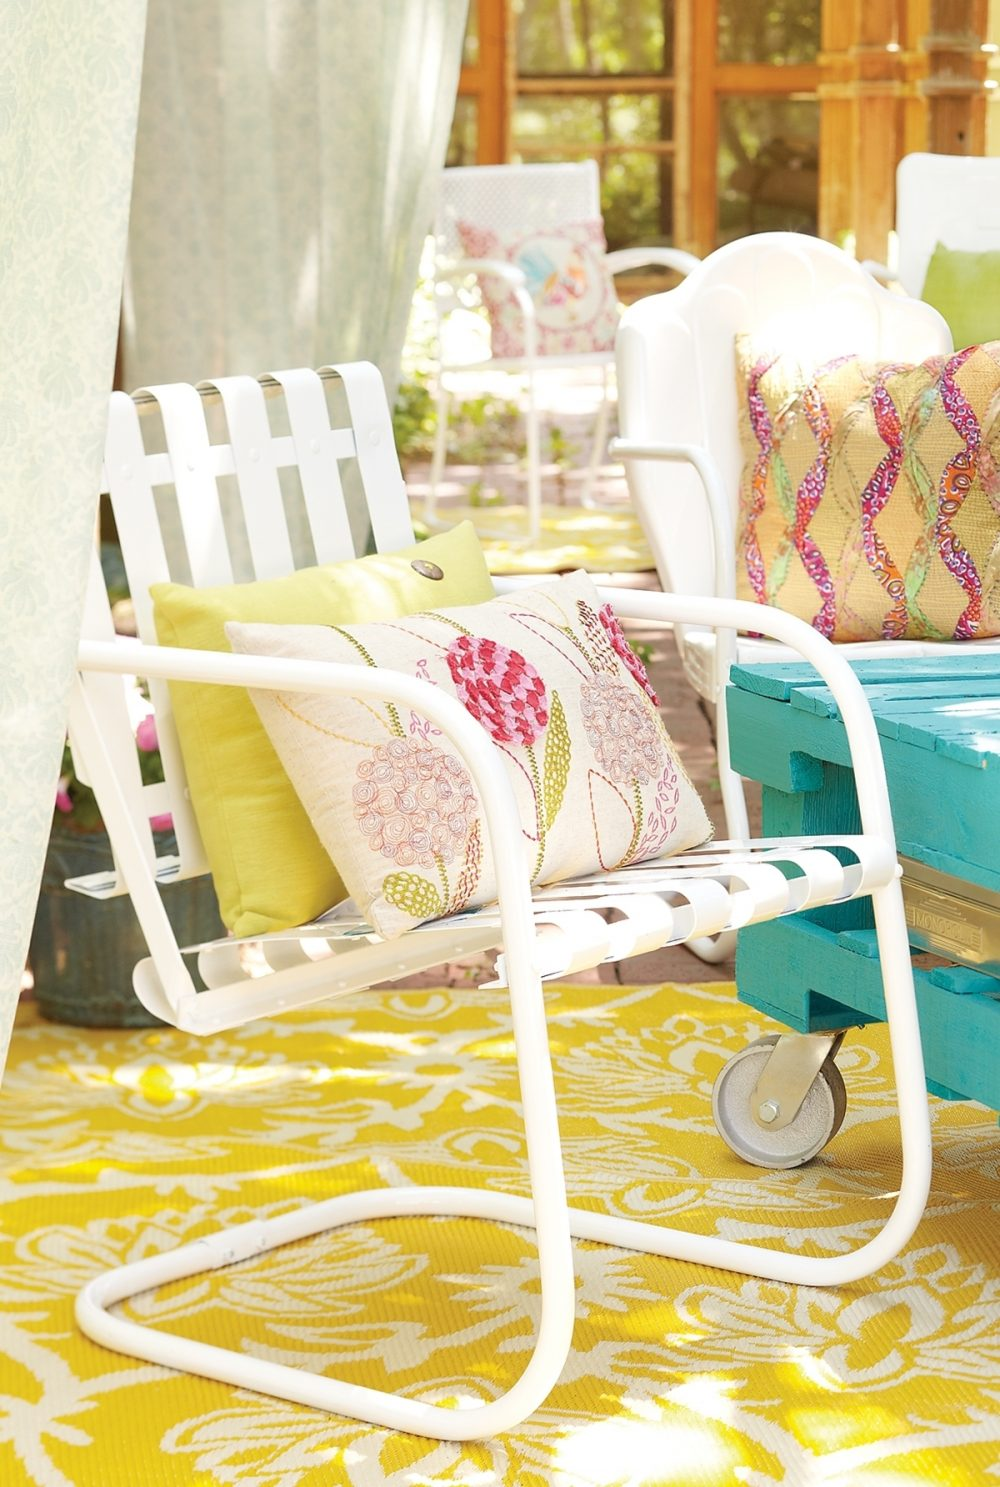 Restore weathered lawn furniture by stripping and repainting it.